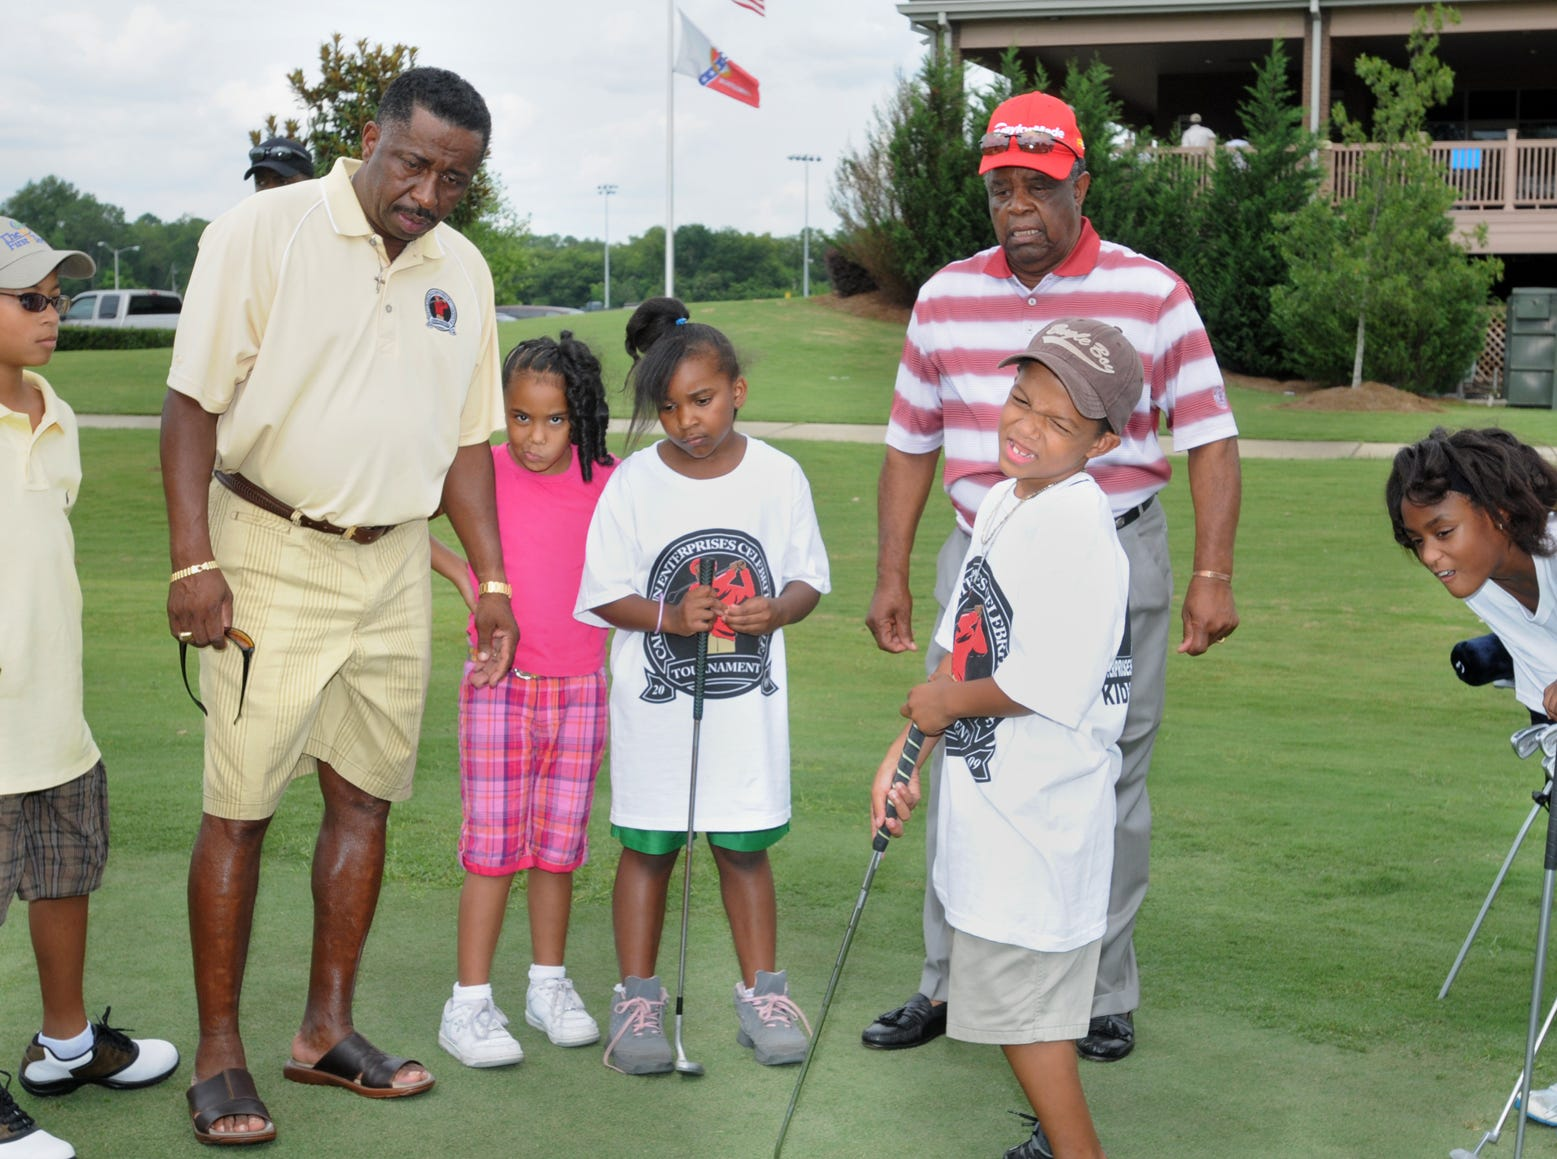 Greg Calhoun, left, and Lee Elder watch children during putting competition in the 3rd annual First Tee Golf Clinic held at Gateway Park Executive Golf Course in Montgomery, Ala. on Sunday, July 19, 2009. (Montgomery Advertiser, Lloyd Gallman)